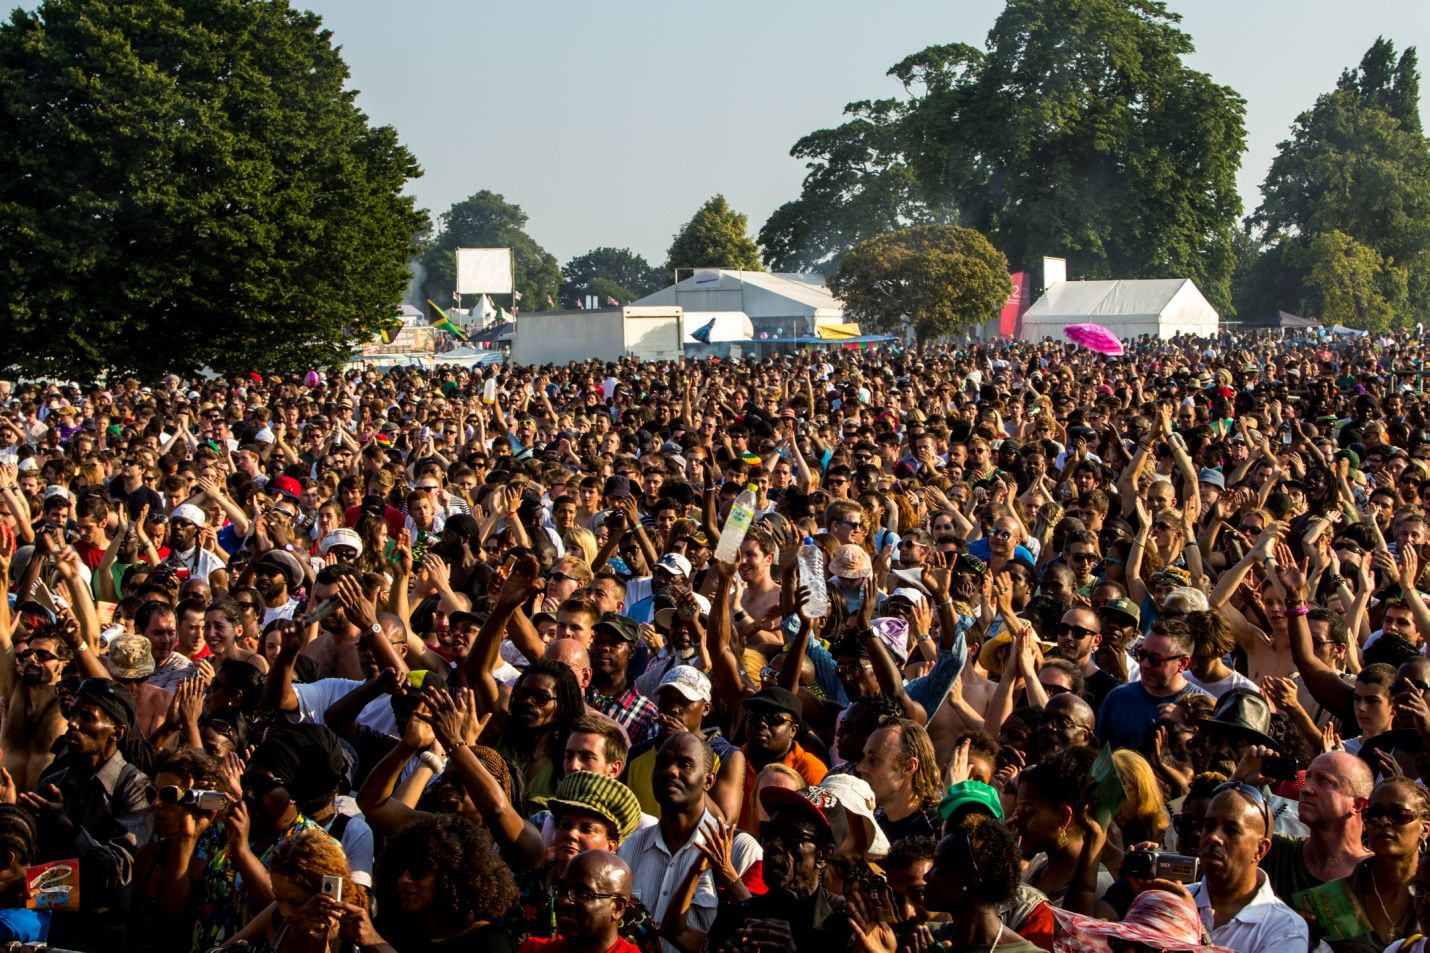 40th Annual Lambeth Country Show Resounding Success